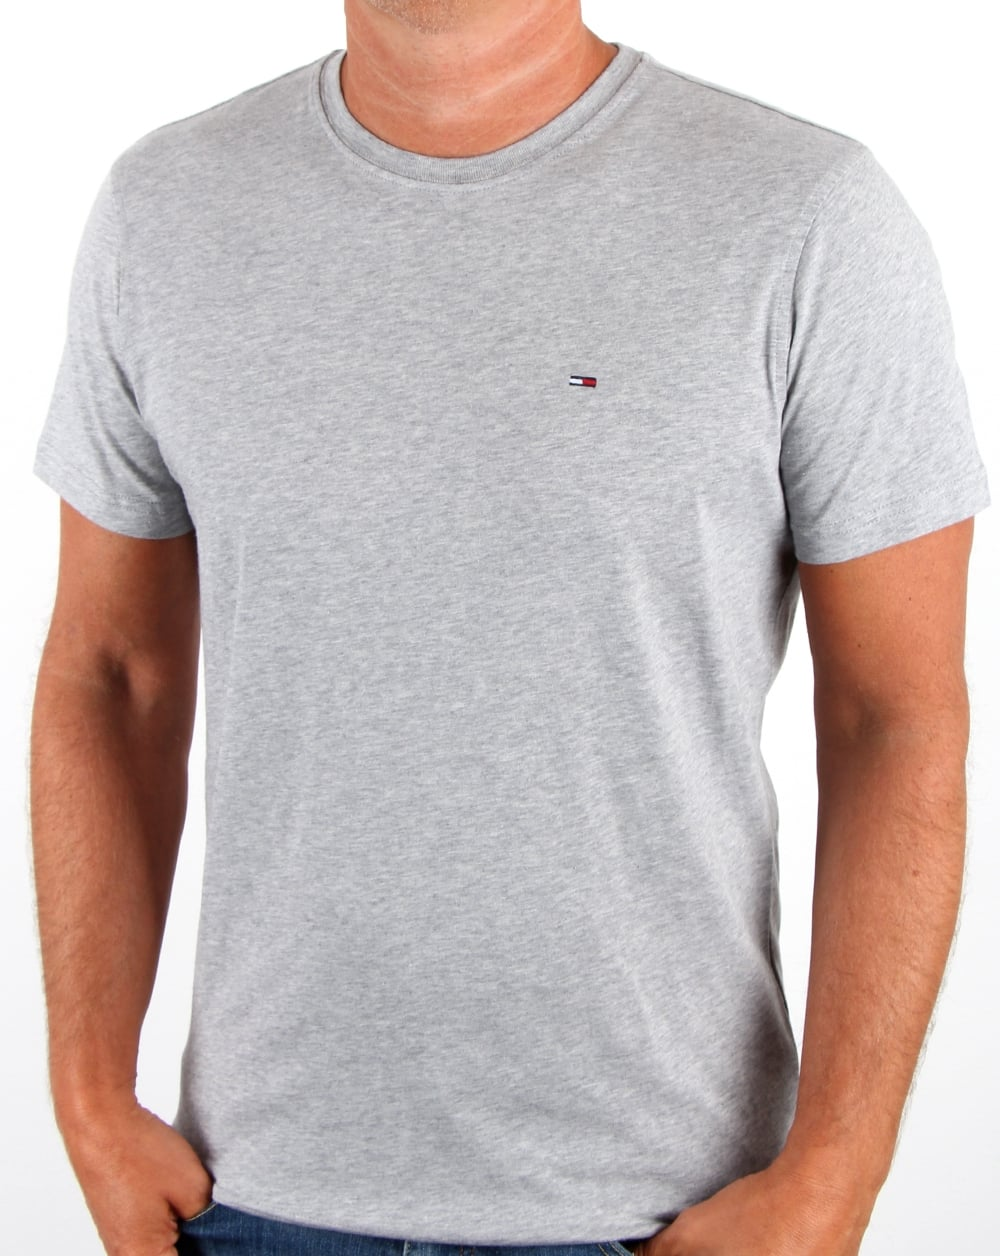 tommy hilfiger cotton crew neck t shirt light grey heather men 39 s